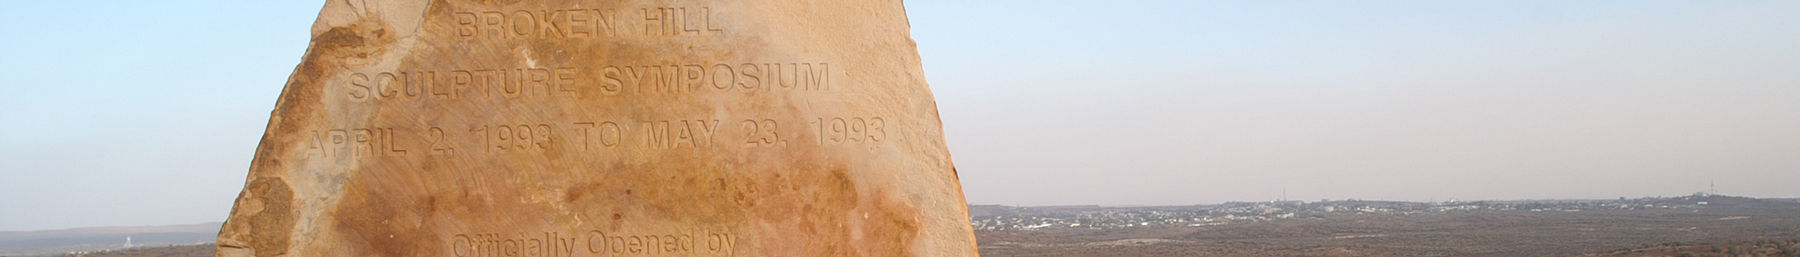 Broken Hill Sculpture Symposium.jpg